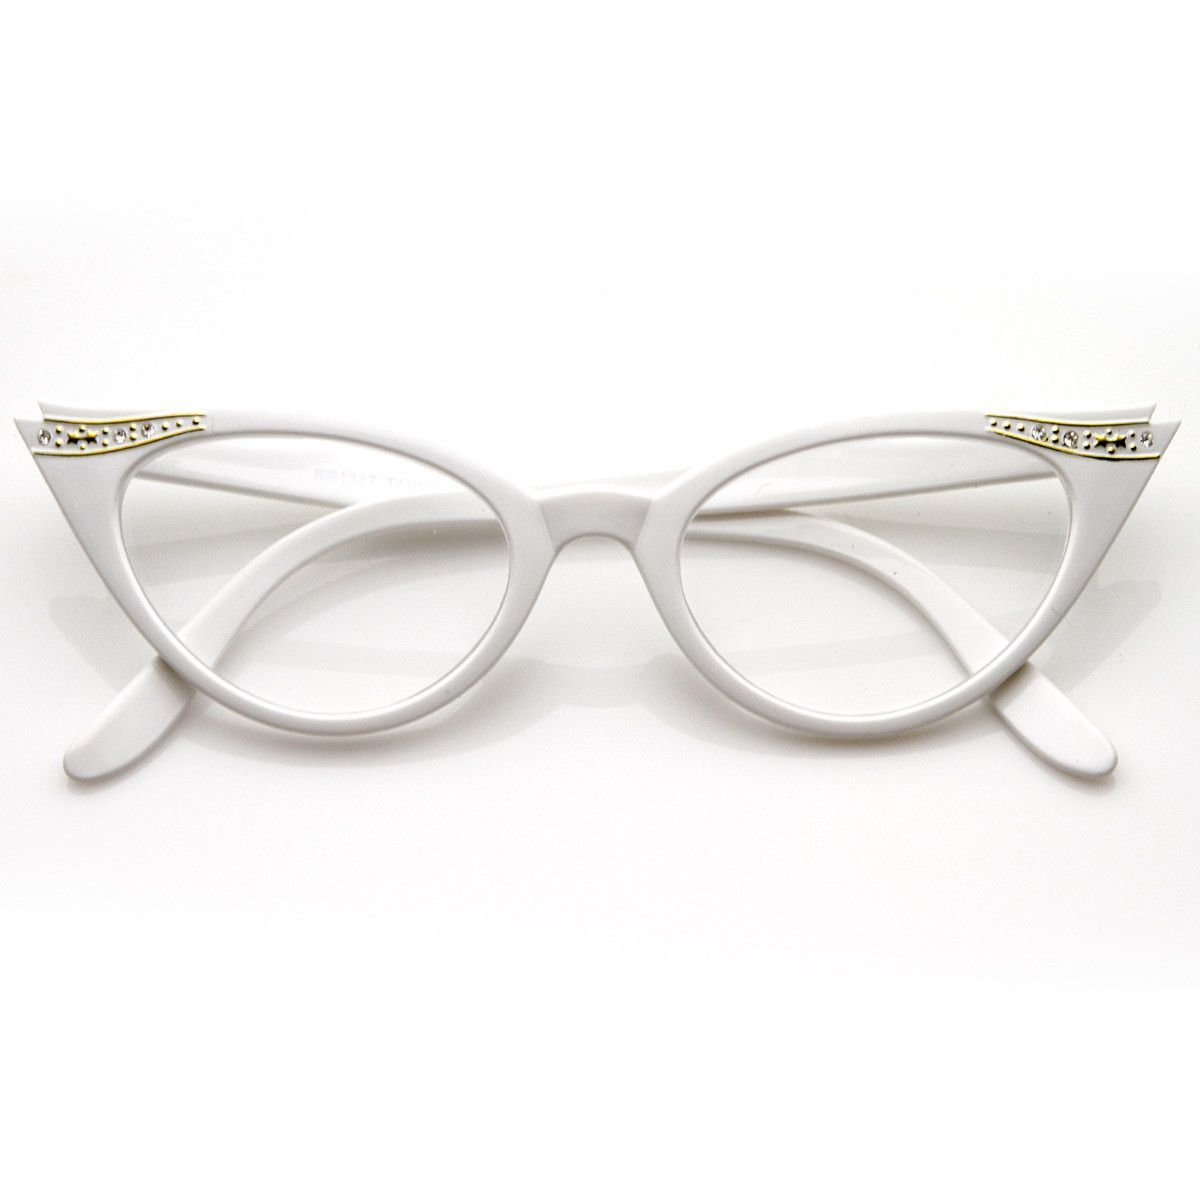 715d63dd42c4 Vintage Cateyes 80s Inspired Fashion Clear Lens Cat Eye Glasses with  Rhinestones